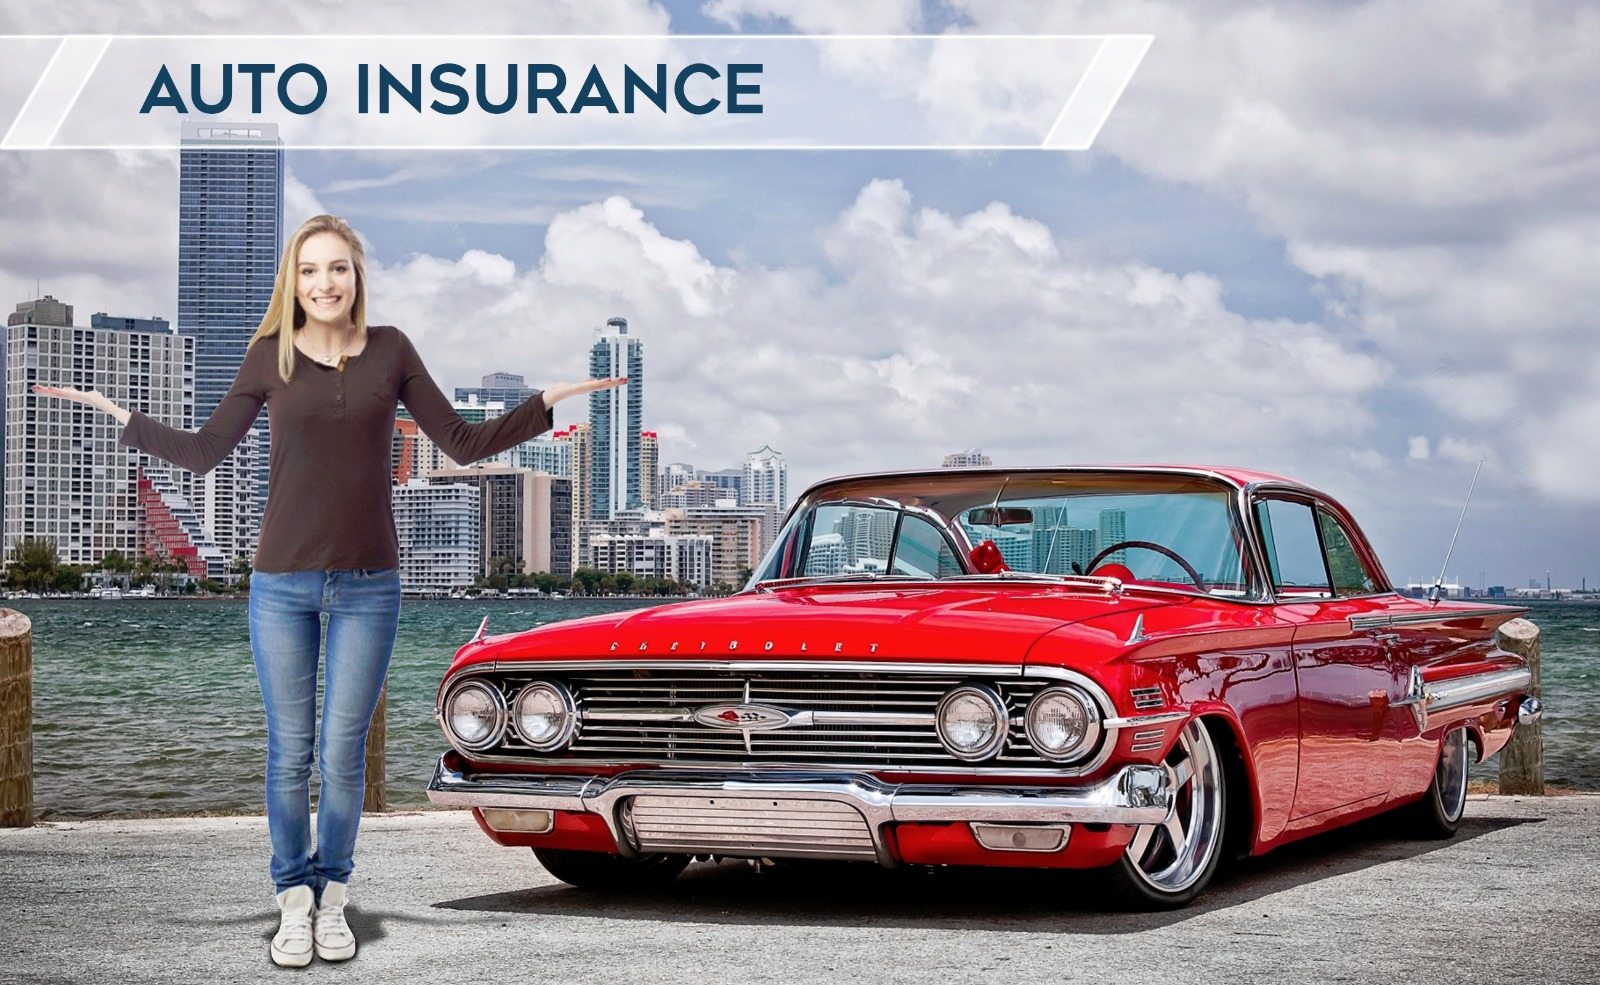 Car Insurance Get an Auto Insurance Quote amp Save